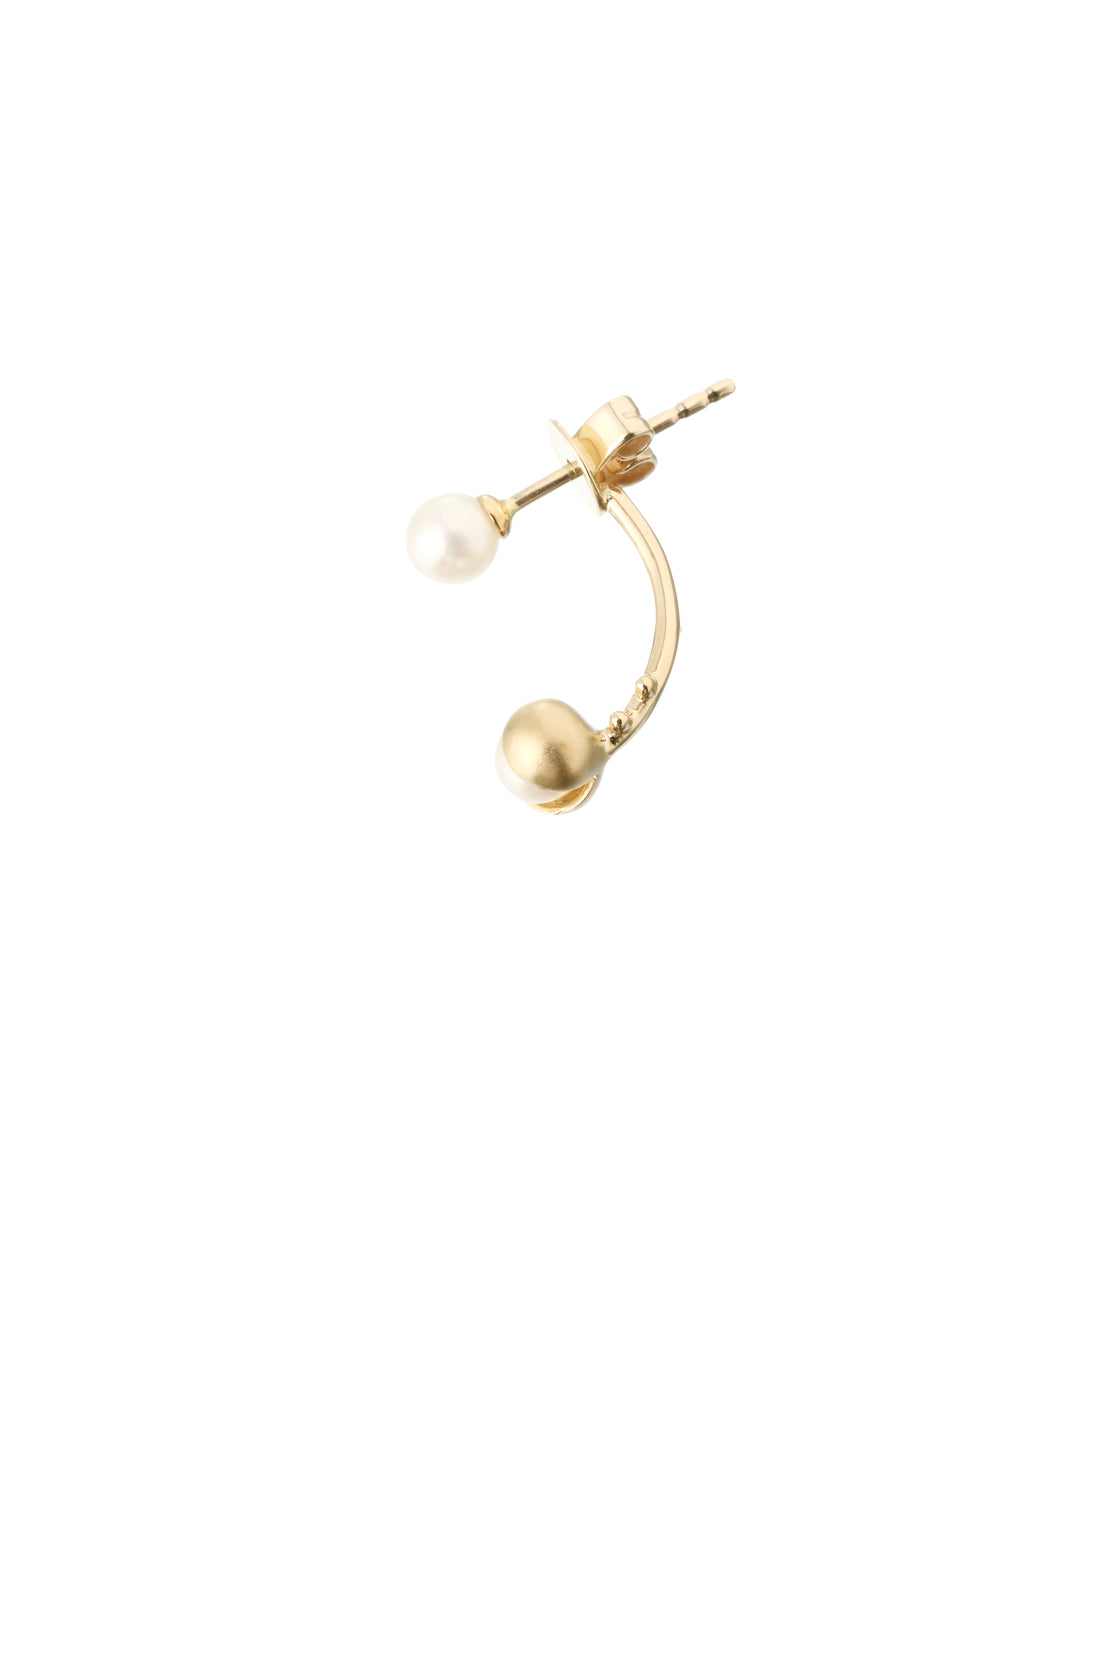 14k Gold Peppercorn and Japanese AKOYA Pearl Earring (1 Piece)